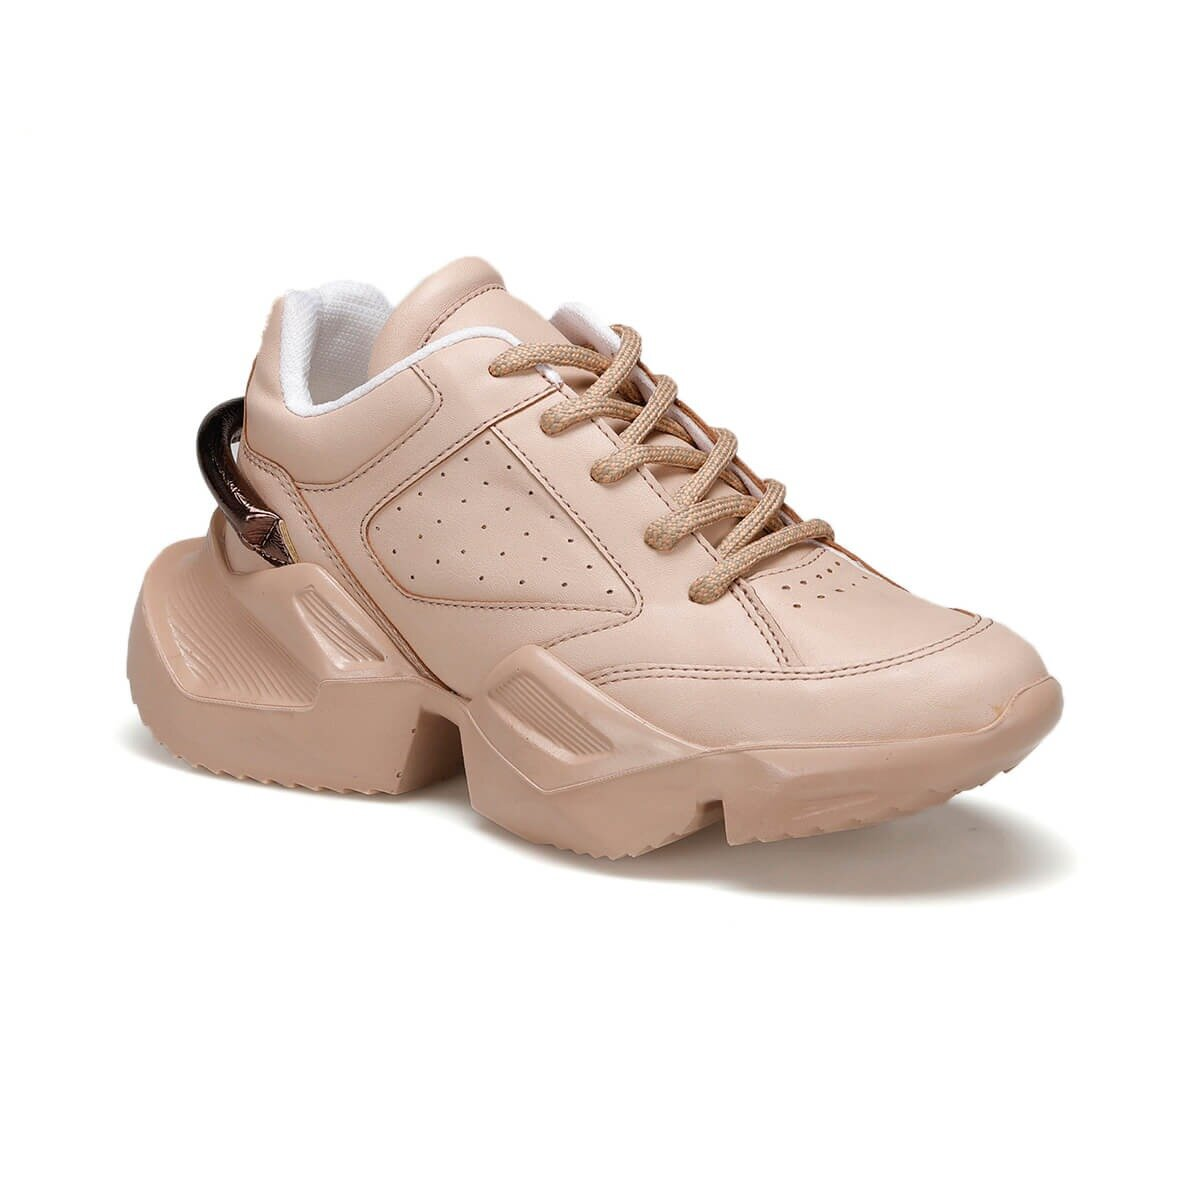 FLO DİOS Powder Women 'S Sneaker Shoes BUTIGO